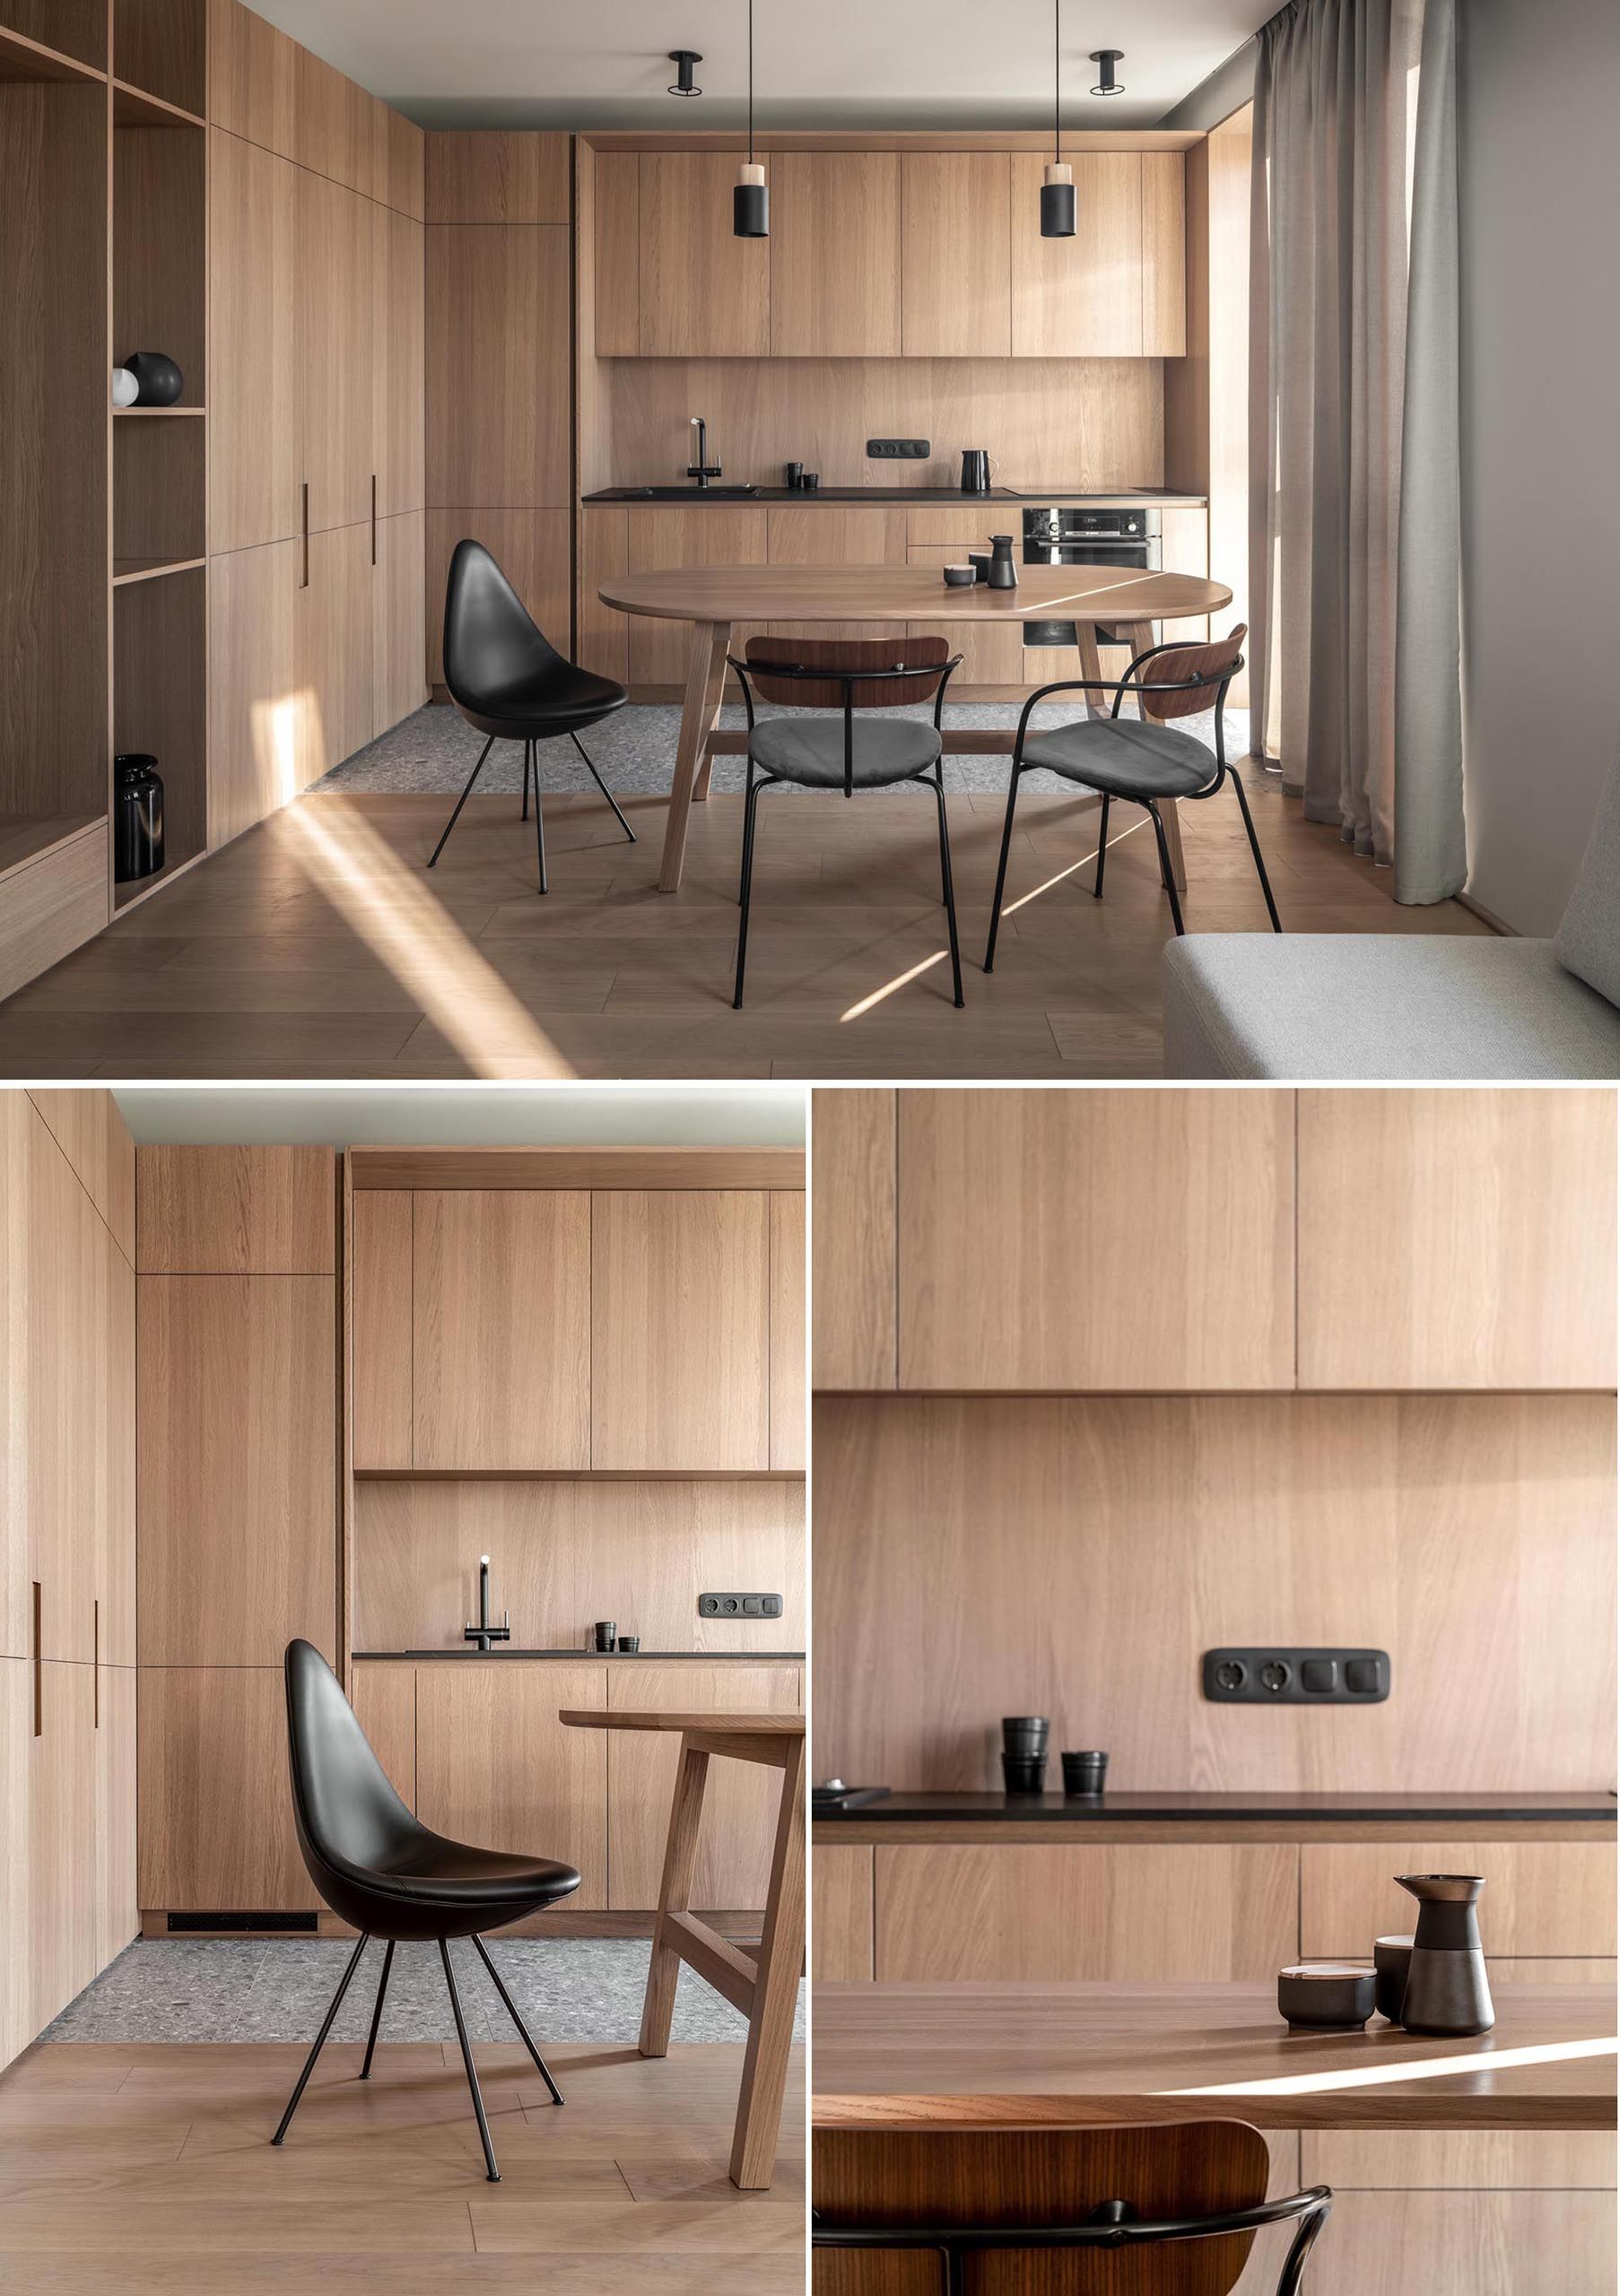 Wood Cabinets Without Hardware Are A Consistent Feature Throughout This Apartment In 2020 Wood Cabinets Modern Wood Kitchen Wood Bedside Table